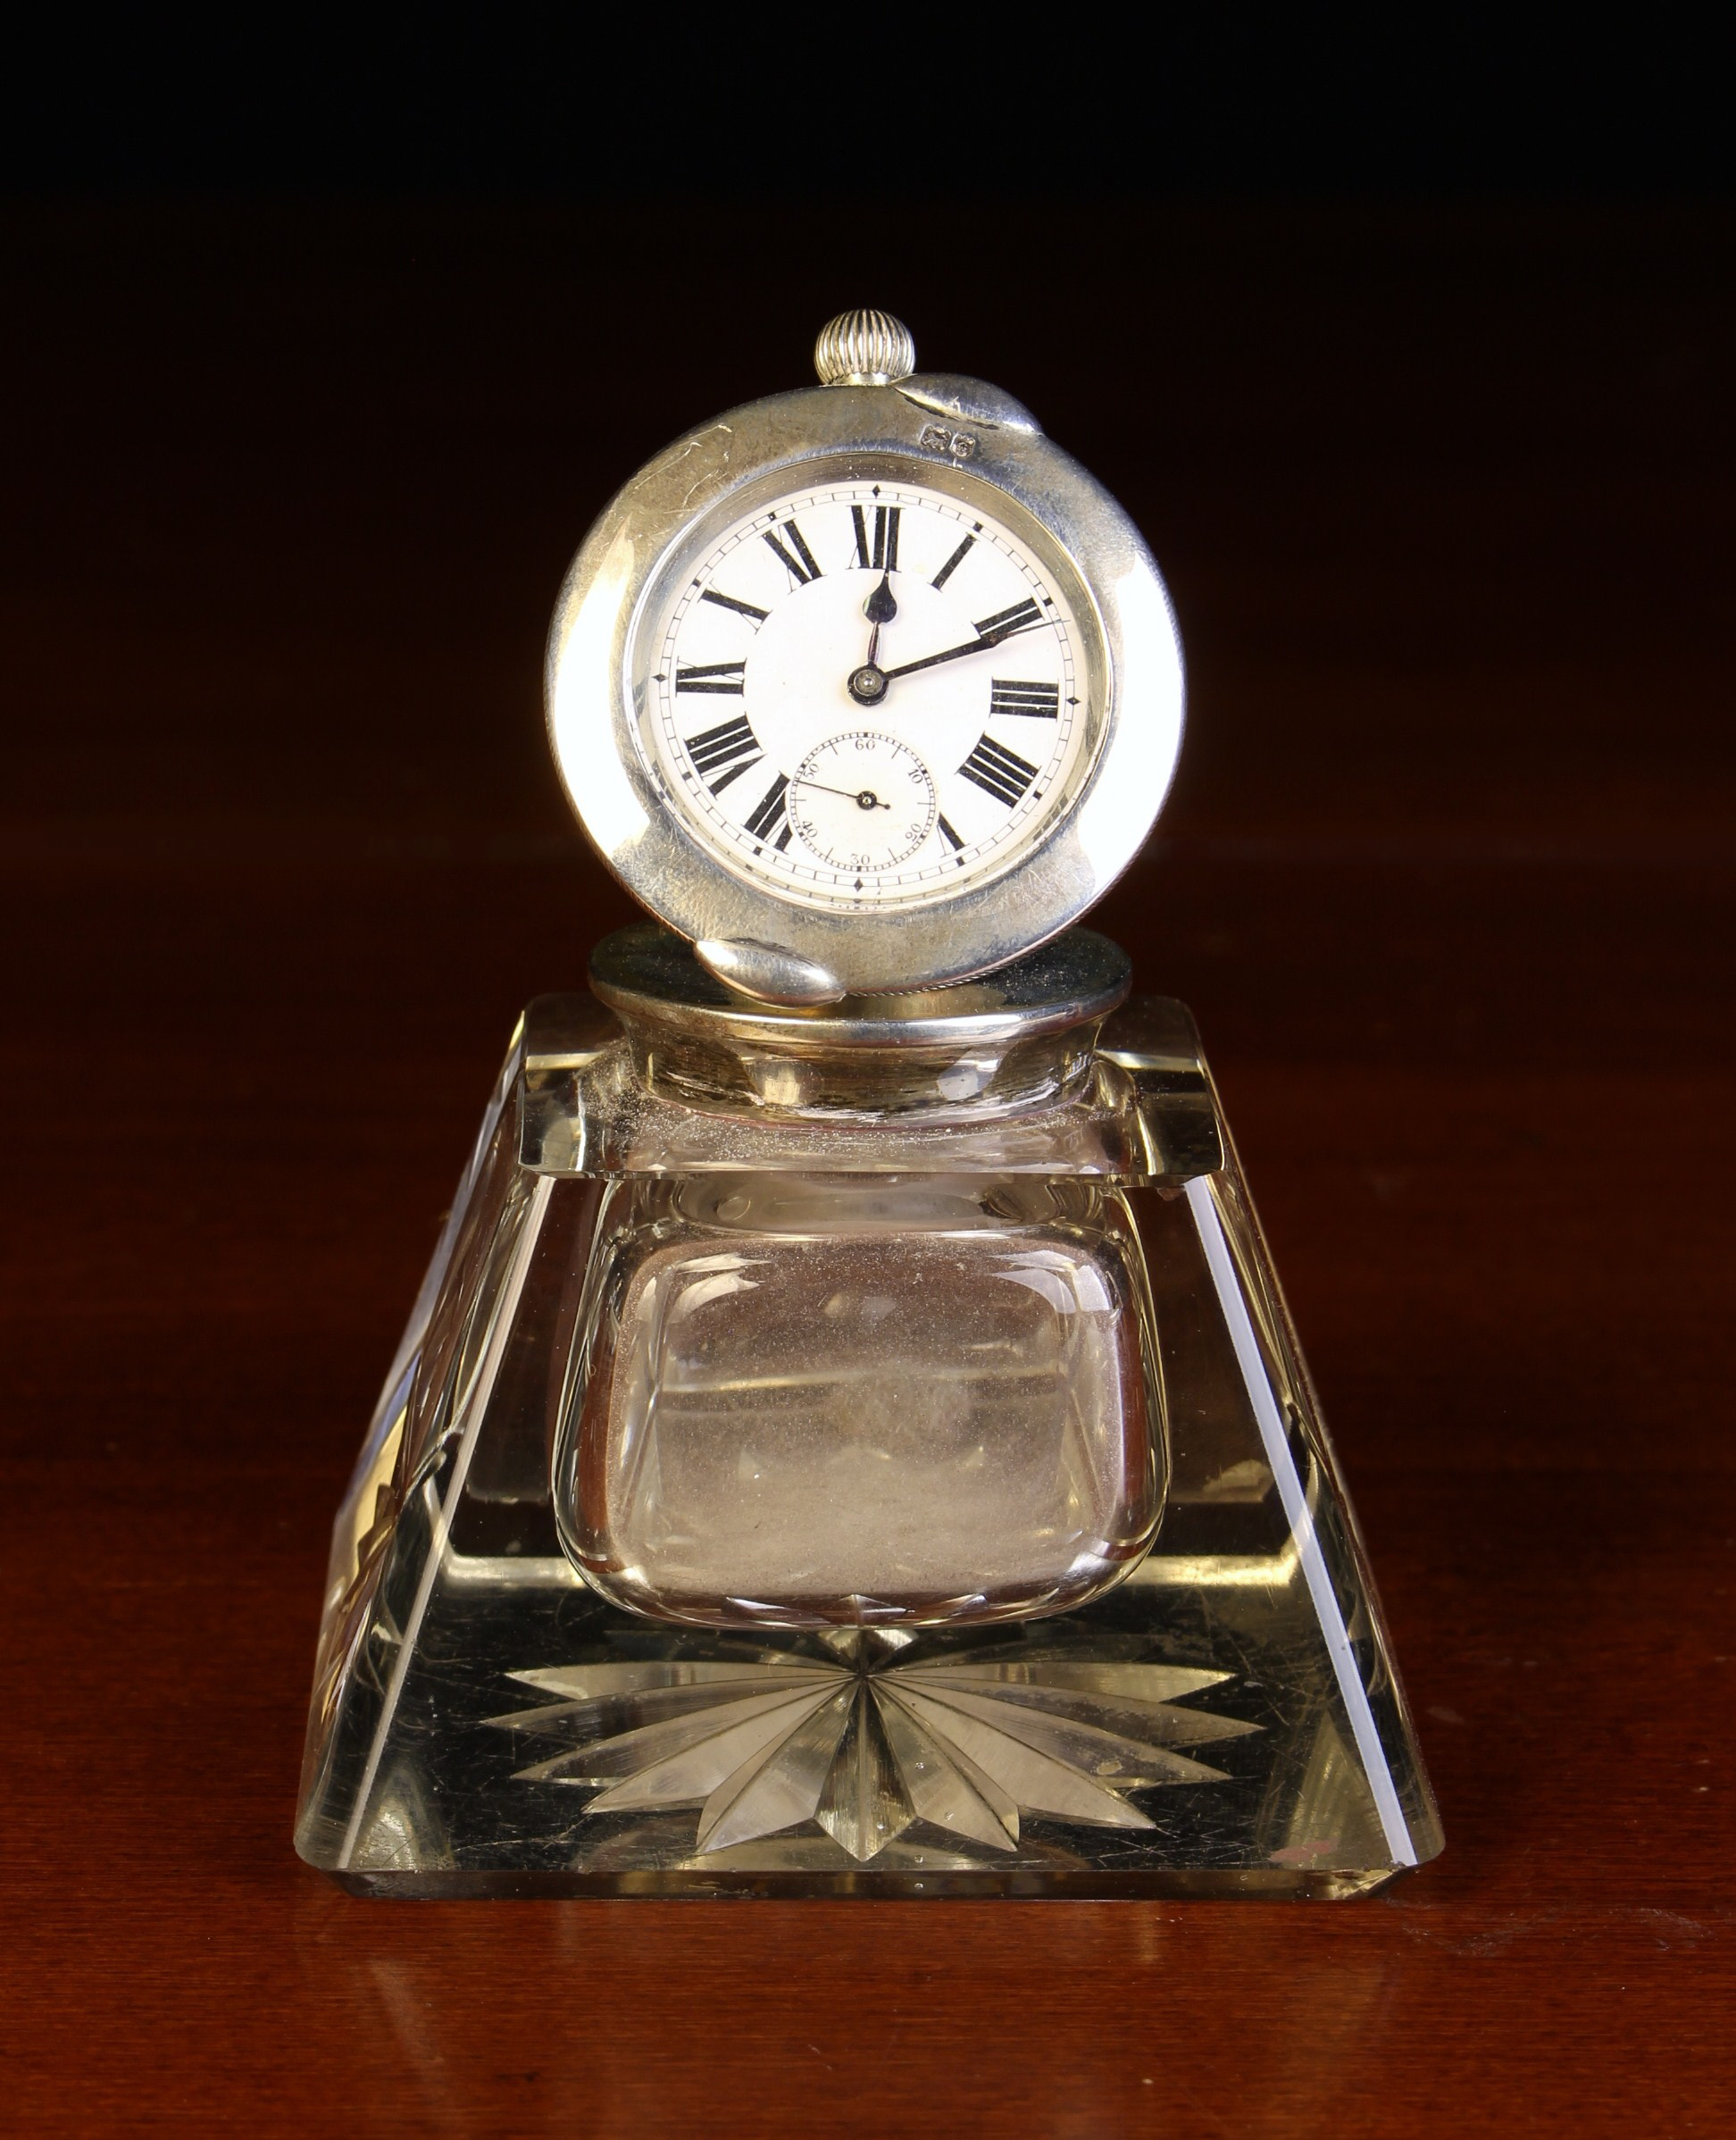 A Handsome Silver Mounted Inkwell/Watch Holder hallmarked London 1907 with Stewart Dawson & Co Ltd - Image 2 of 4